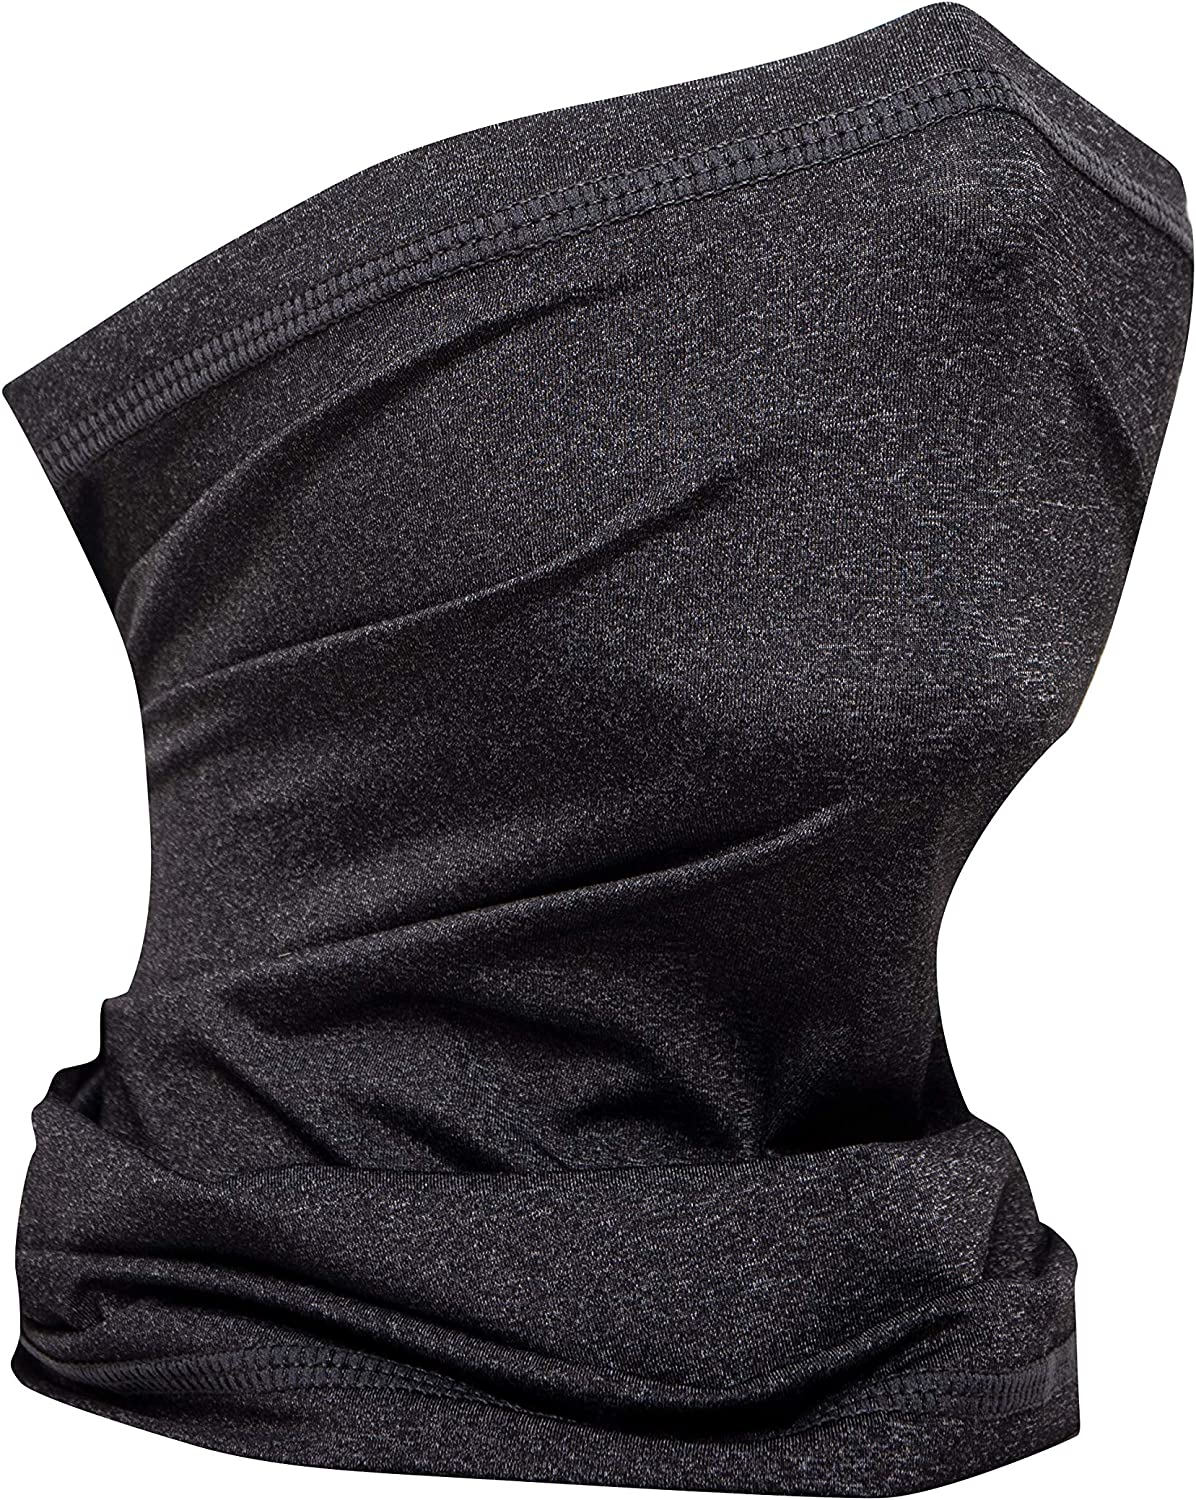 TopShape Cooling Neck Gaiter | Sun, Dust, Wind Protection for Festivals, Motorcycle Riding, Running, Hunting, Fishing